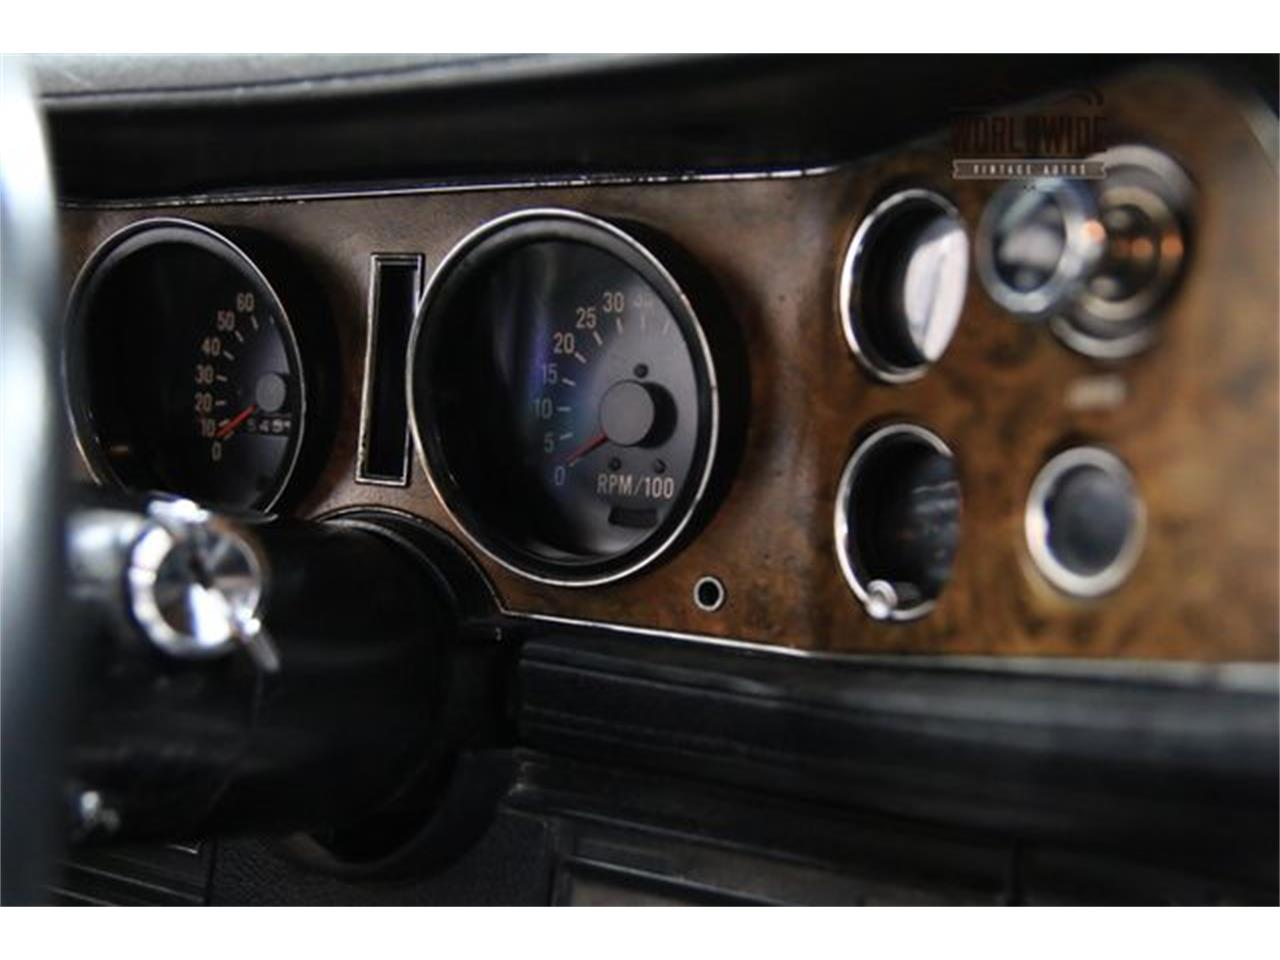 Large Picture of Classic 1971 Chevrolet Camaro located in Colorado - $19,900.00 Offered by Worldwide Vintage Autos - M6UI